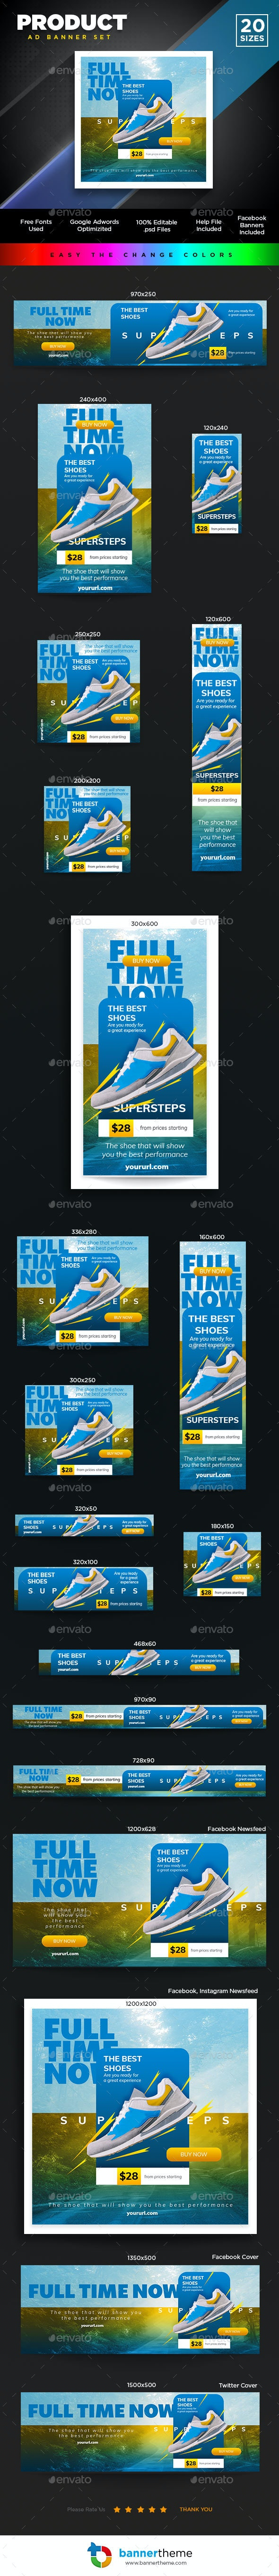 Product Banner - Banners & Ads Web Elements